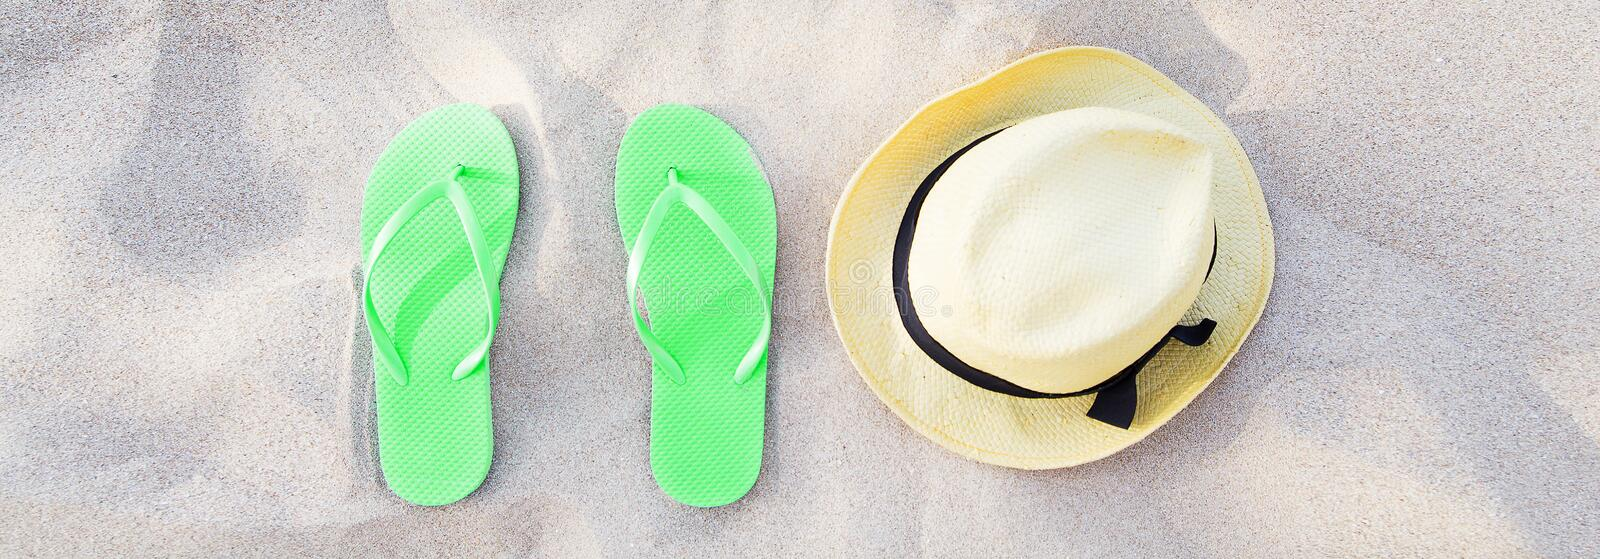 Summer accessories on beach texture banner background. Green Flip flops and hat on sand top view. Slippers shoes and vacation stock image